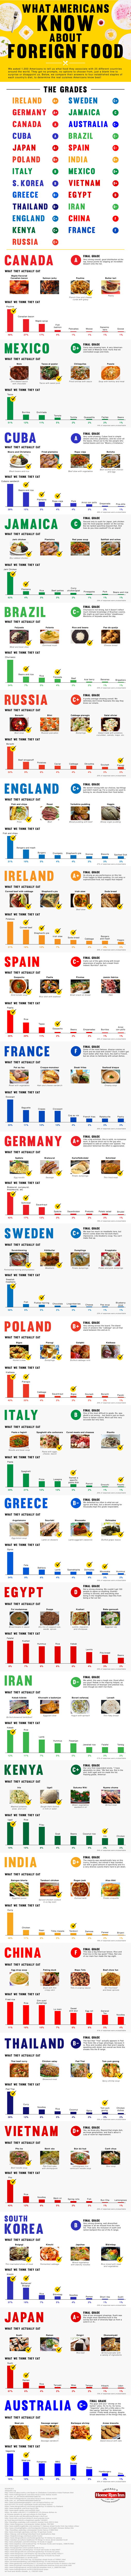 What's Foreign Food? The American Point of View - Infographic